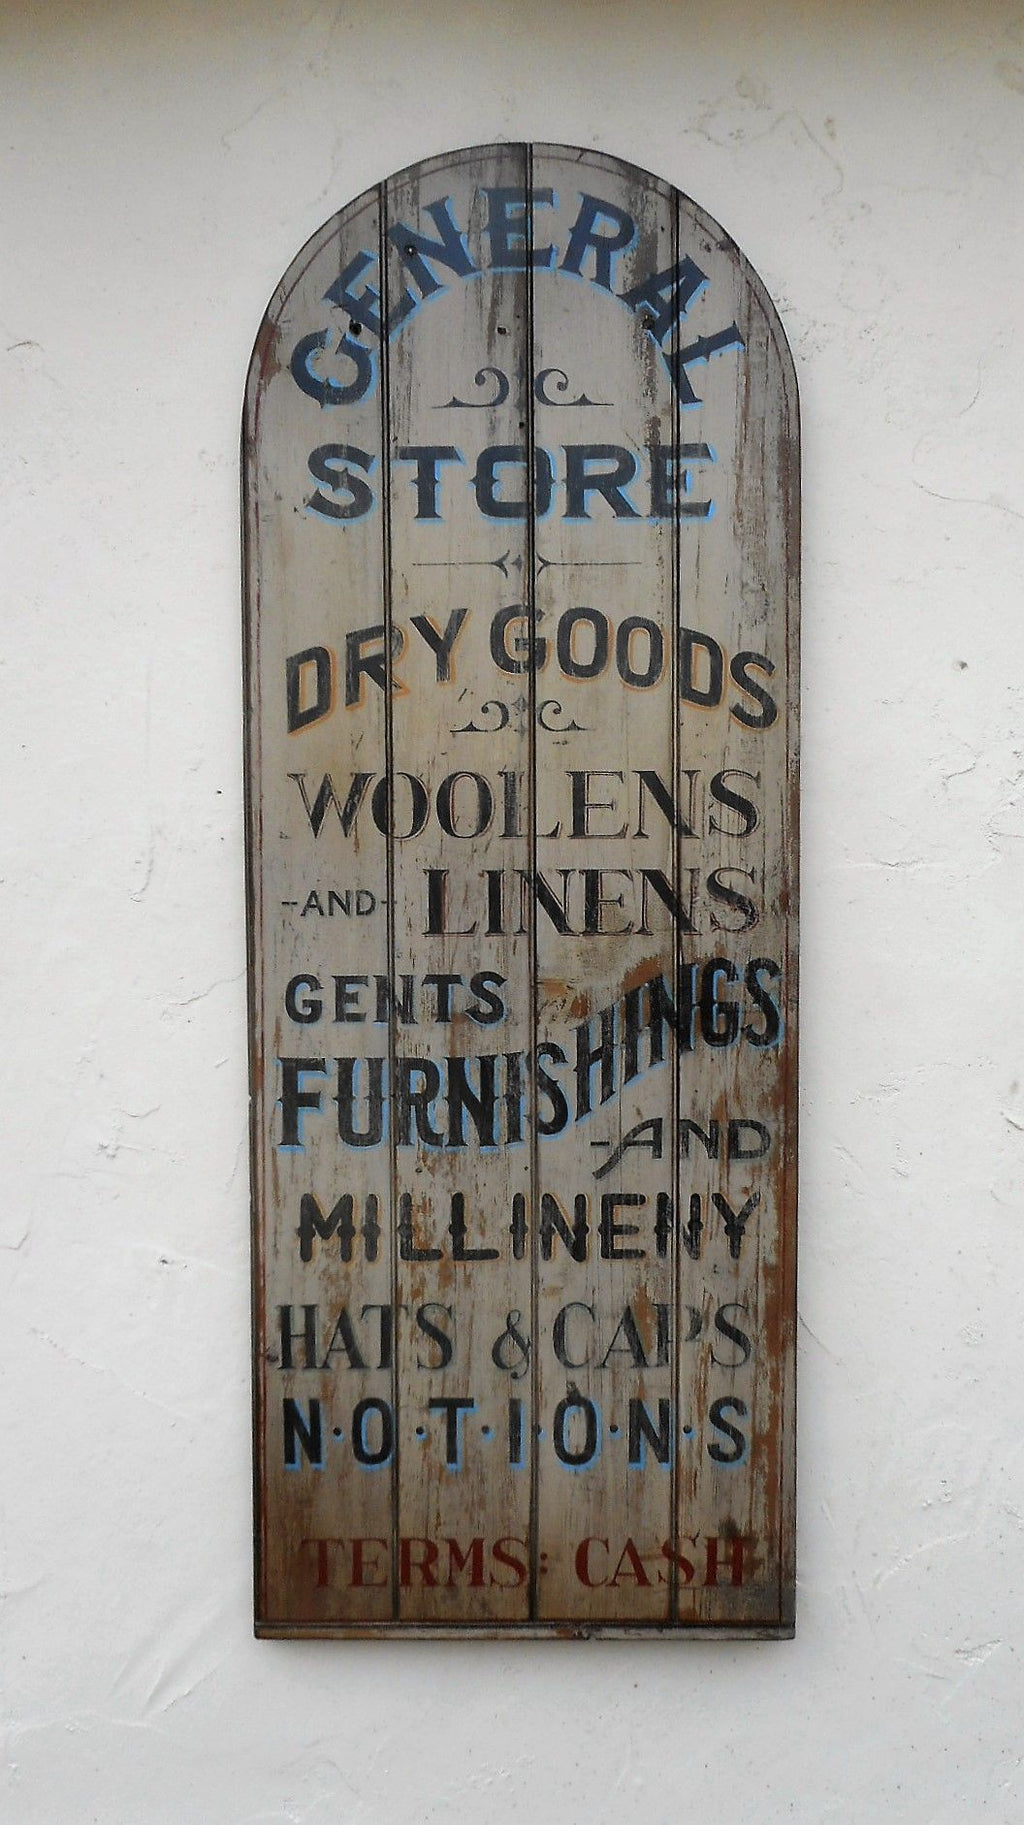 General Store Dry Goods Woolens and Linens (Arched and Vertical) Americana Art